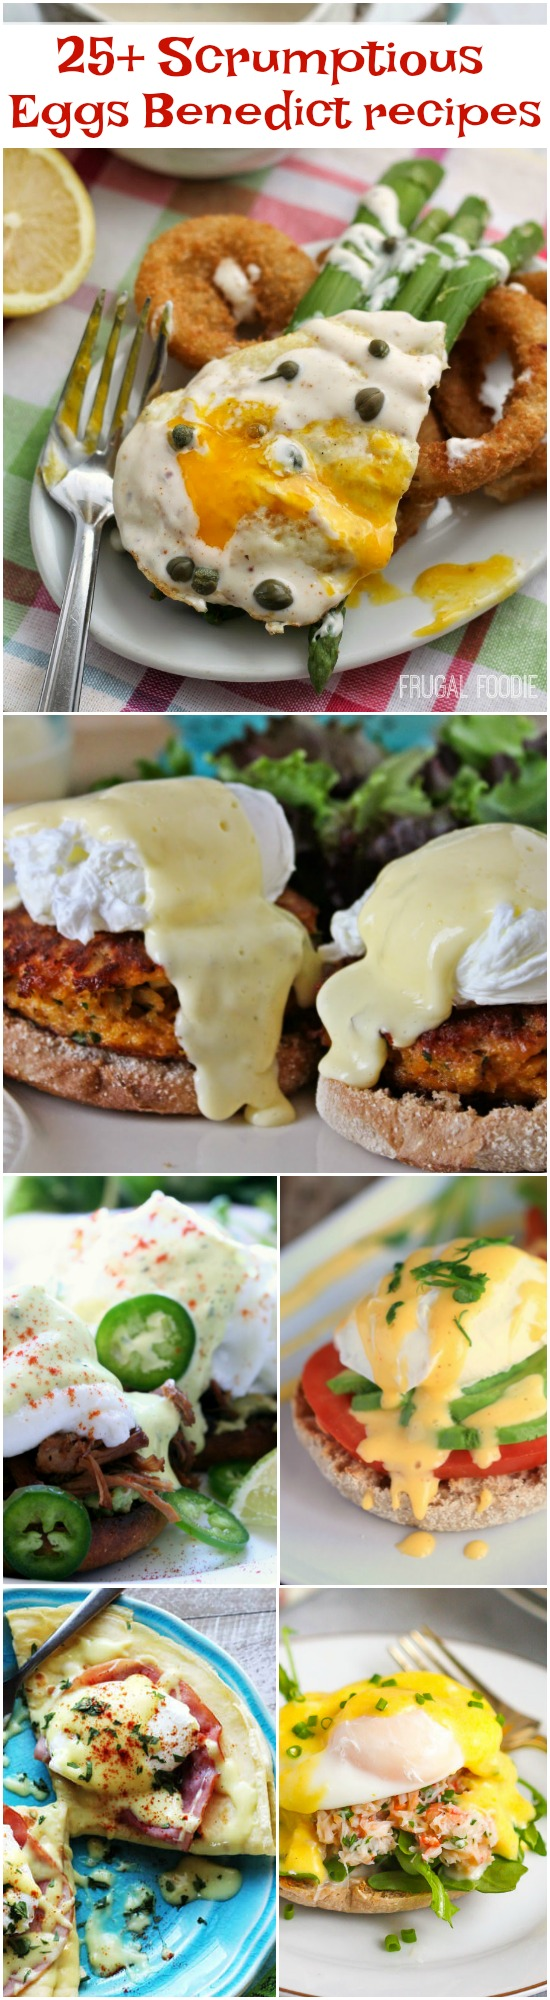 25+ Alternative Eggs Benedict Recipes The epitome of a decadent brunch, eggs benedict can easily be made at home. This classic recipe for both Hollandaise sauce and poached eggs can easily be mastered and enjoyed without having to go to a restaurant.